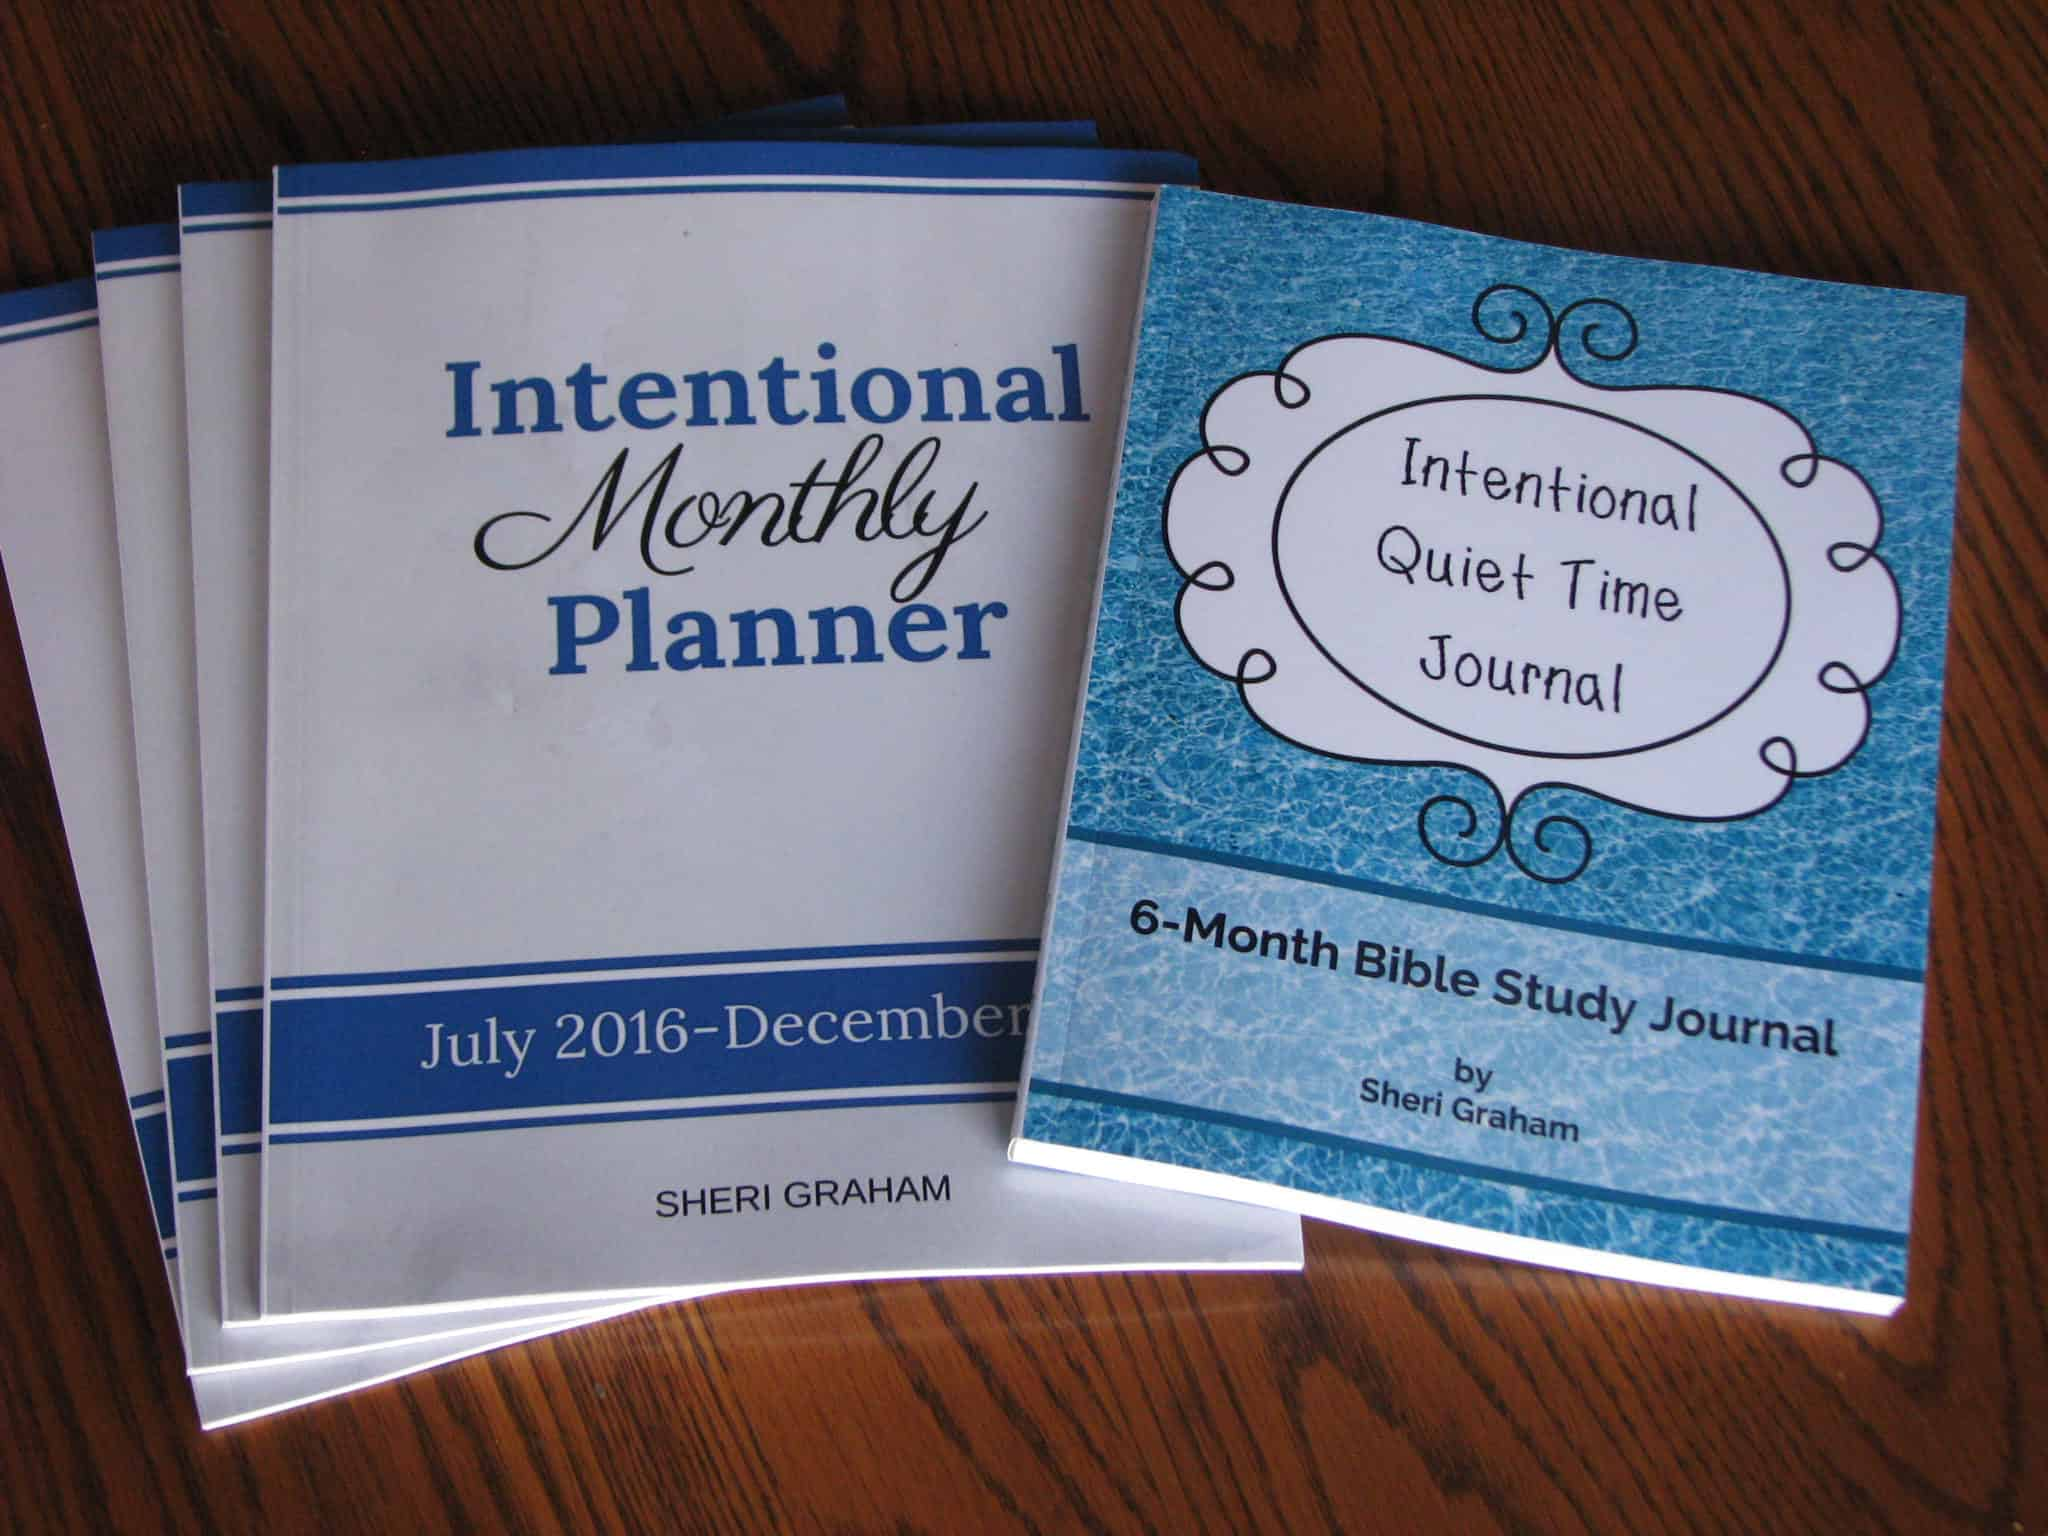 Intentional Quiet Time Journal and Intentional Monthly Planner